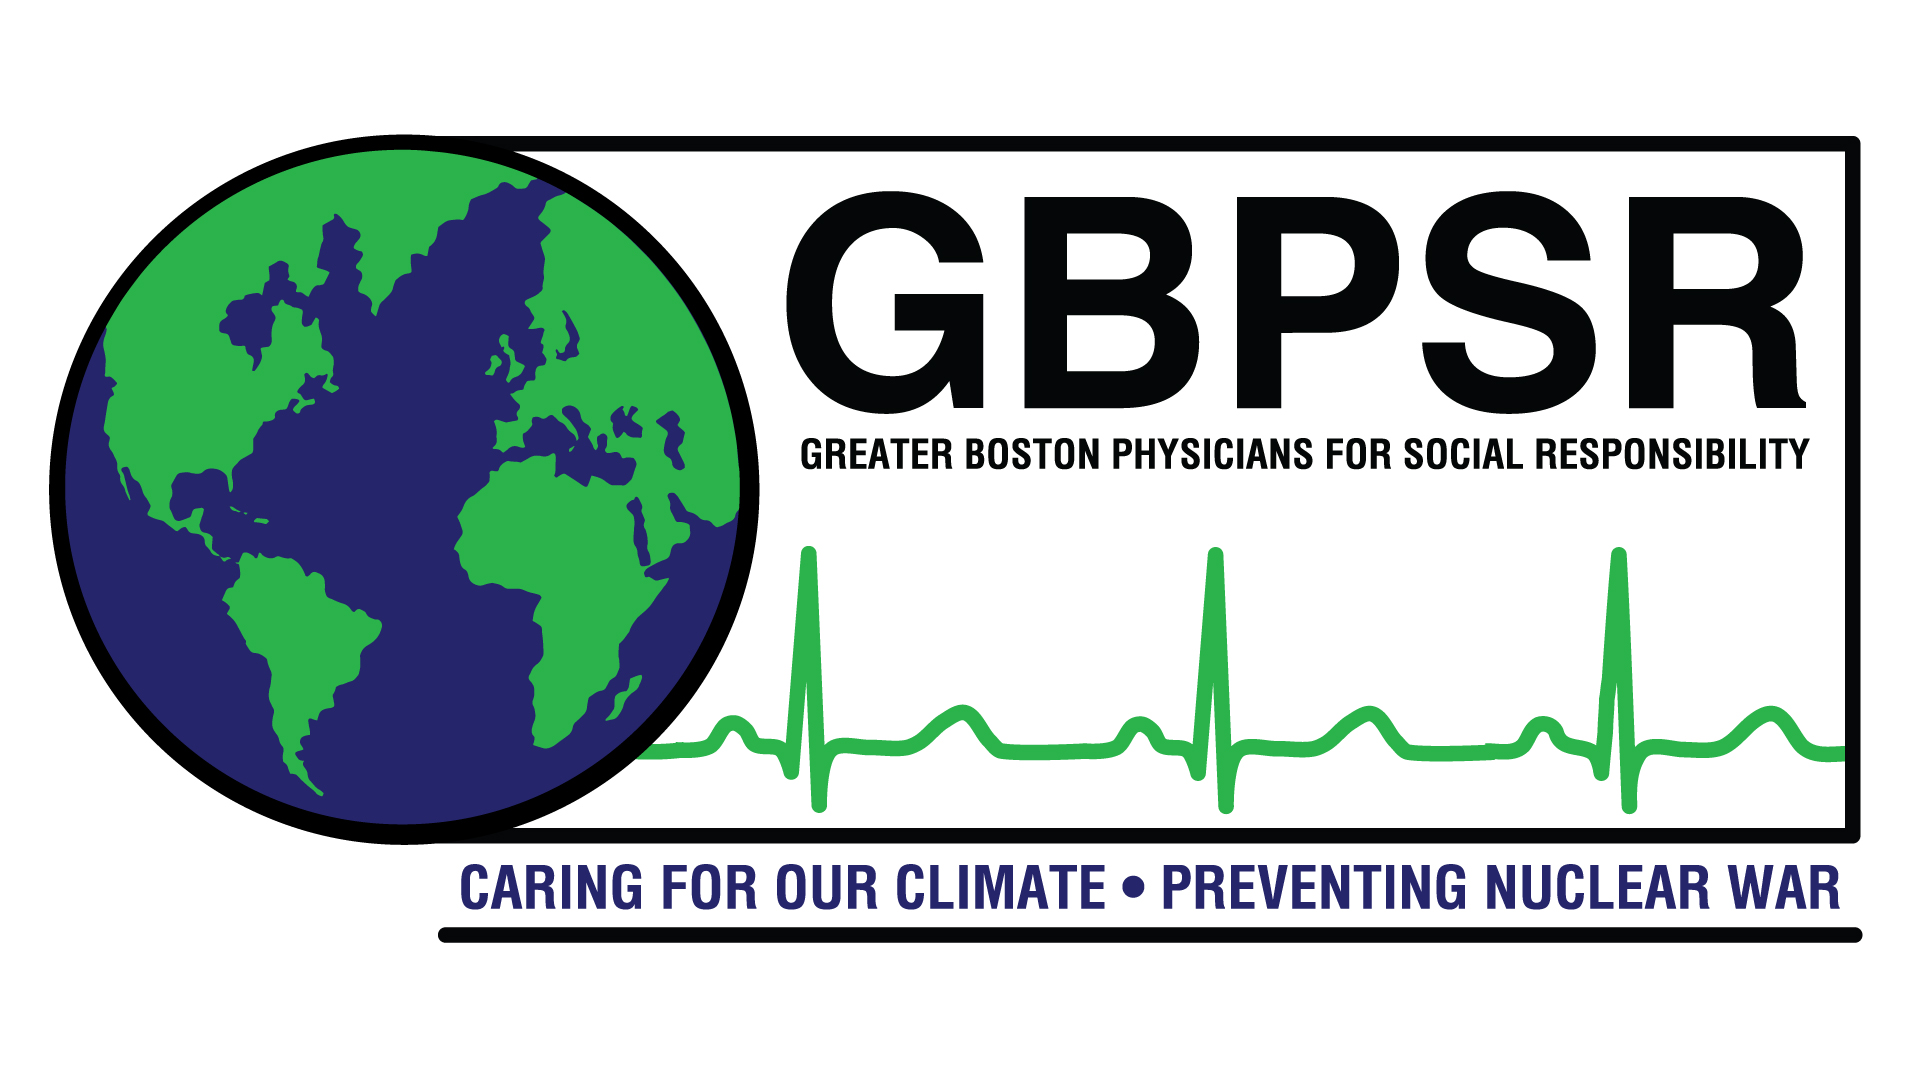 Greater Boston Physicians for Social Responsibility